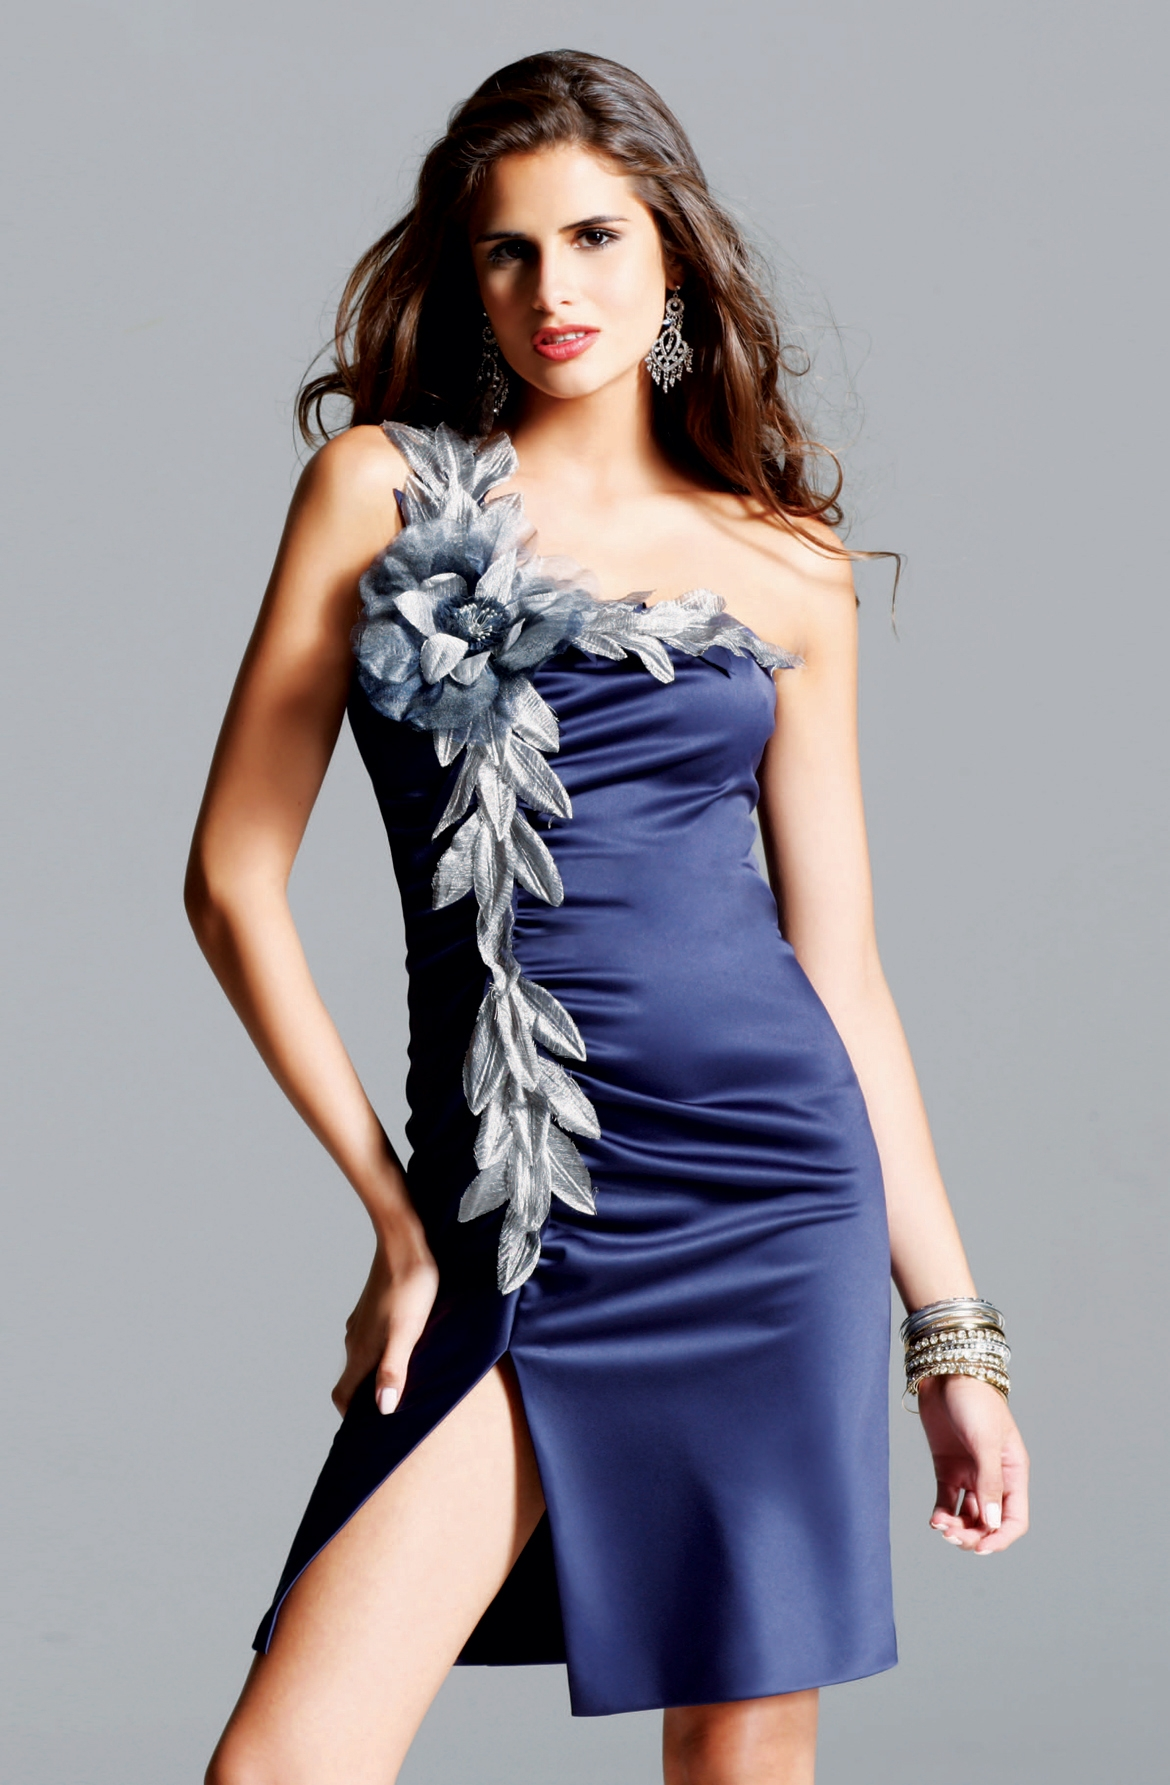 Violet One Shoulder High Slit Knee Length Column Sexy Dresses With Silver Flowers And Leaves